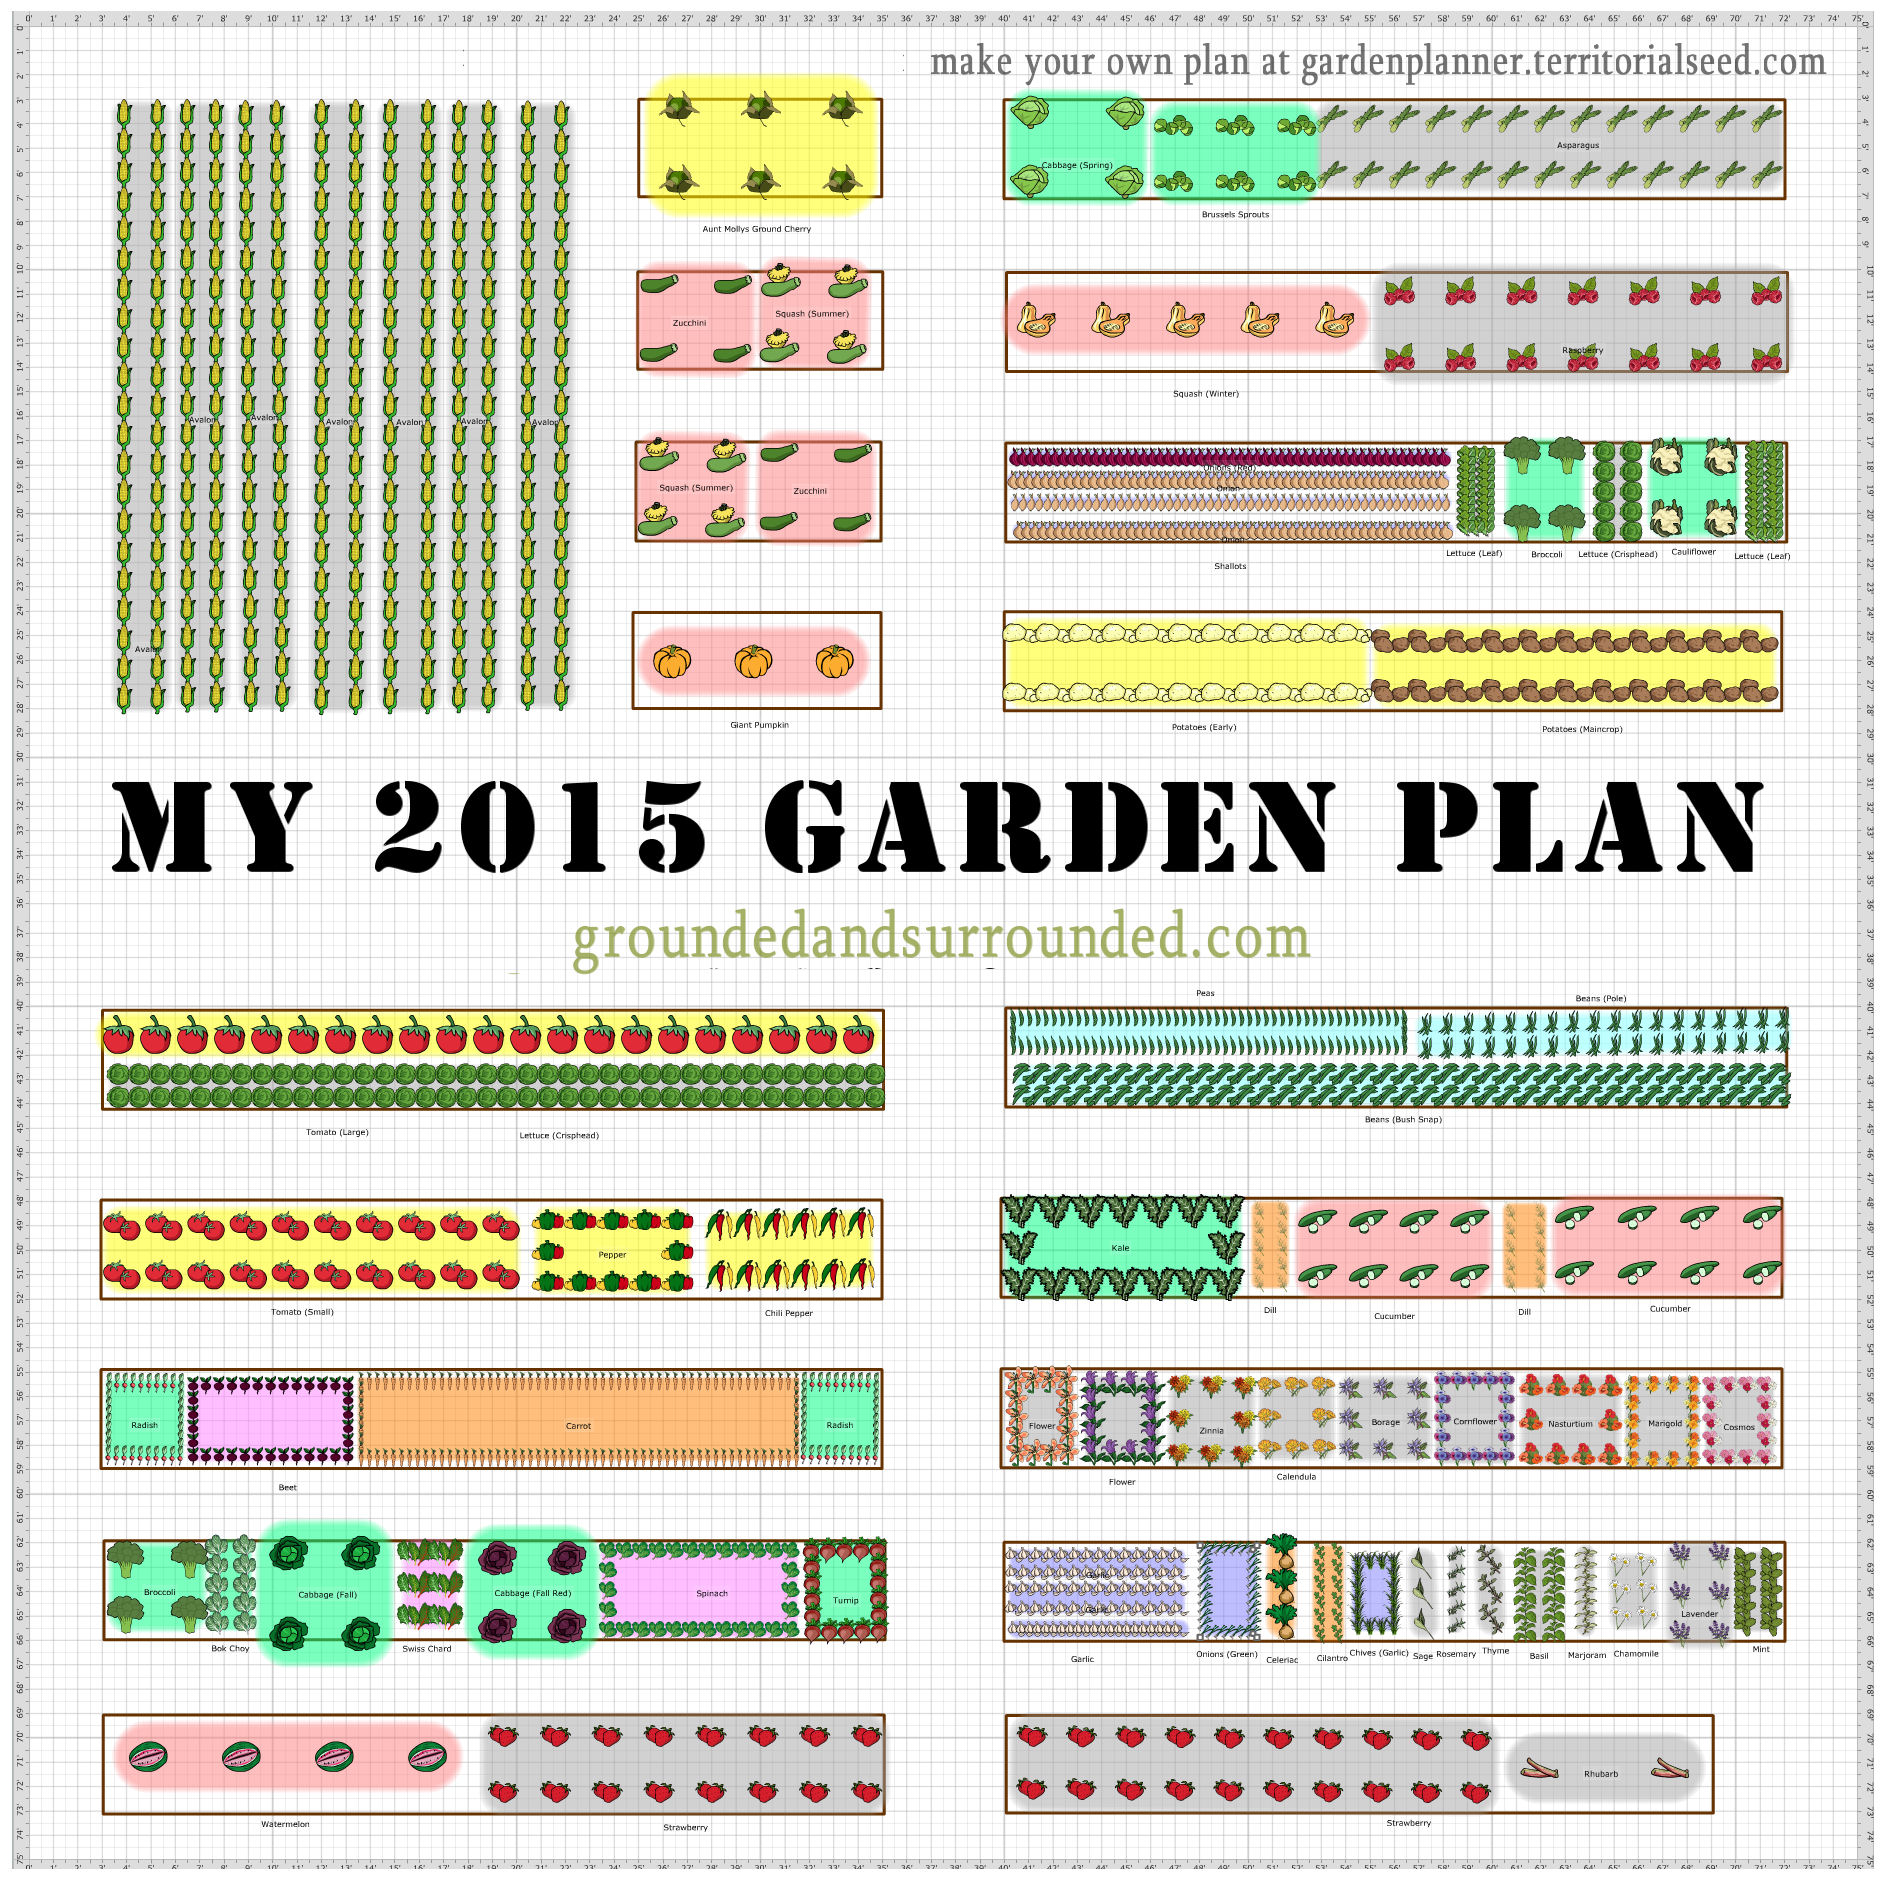 My 5 000 sq ft vegetable garden plan grounded surrounded for Best vegetable garden planner